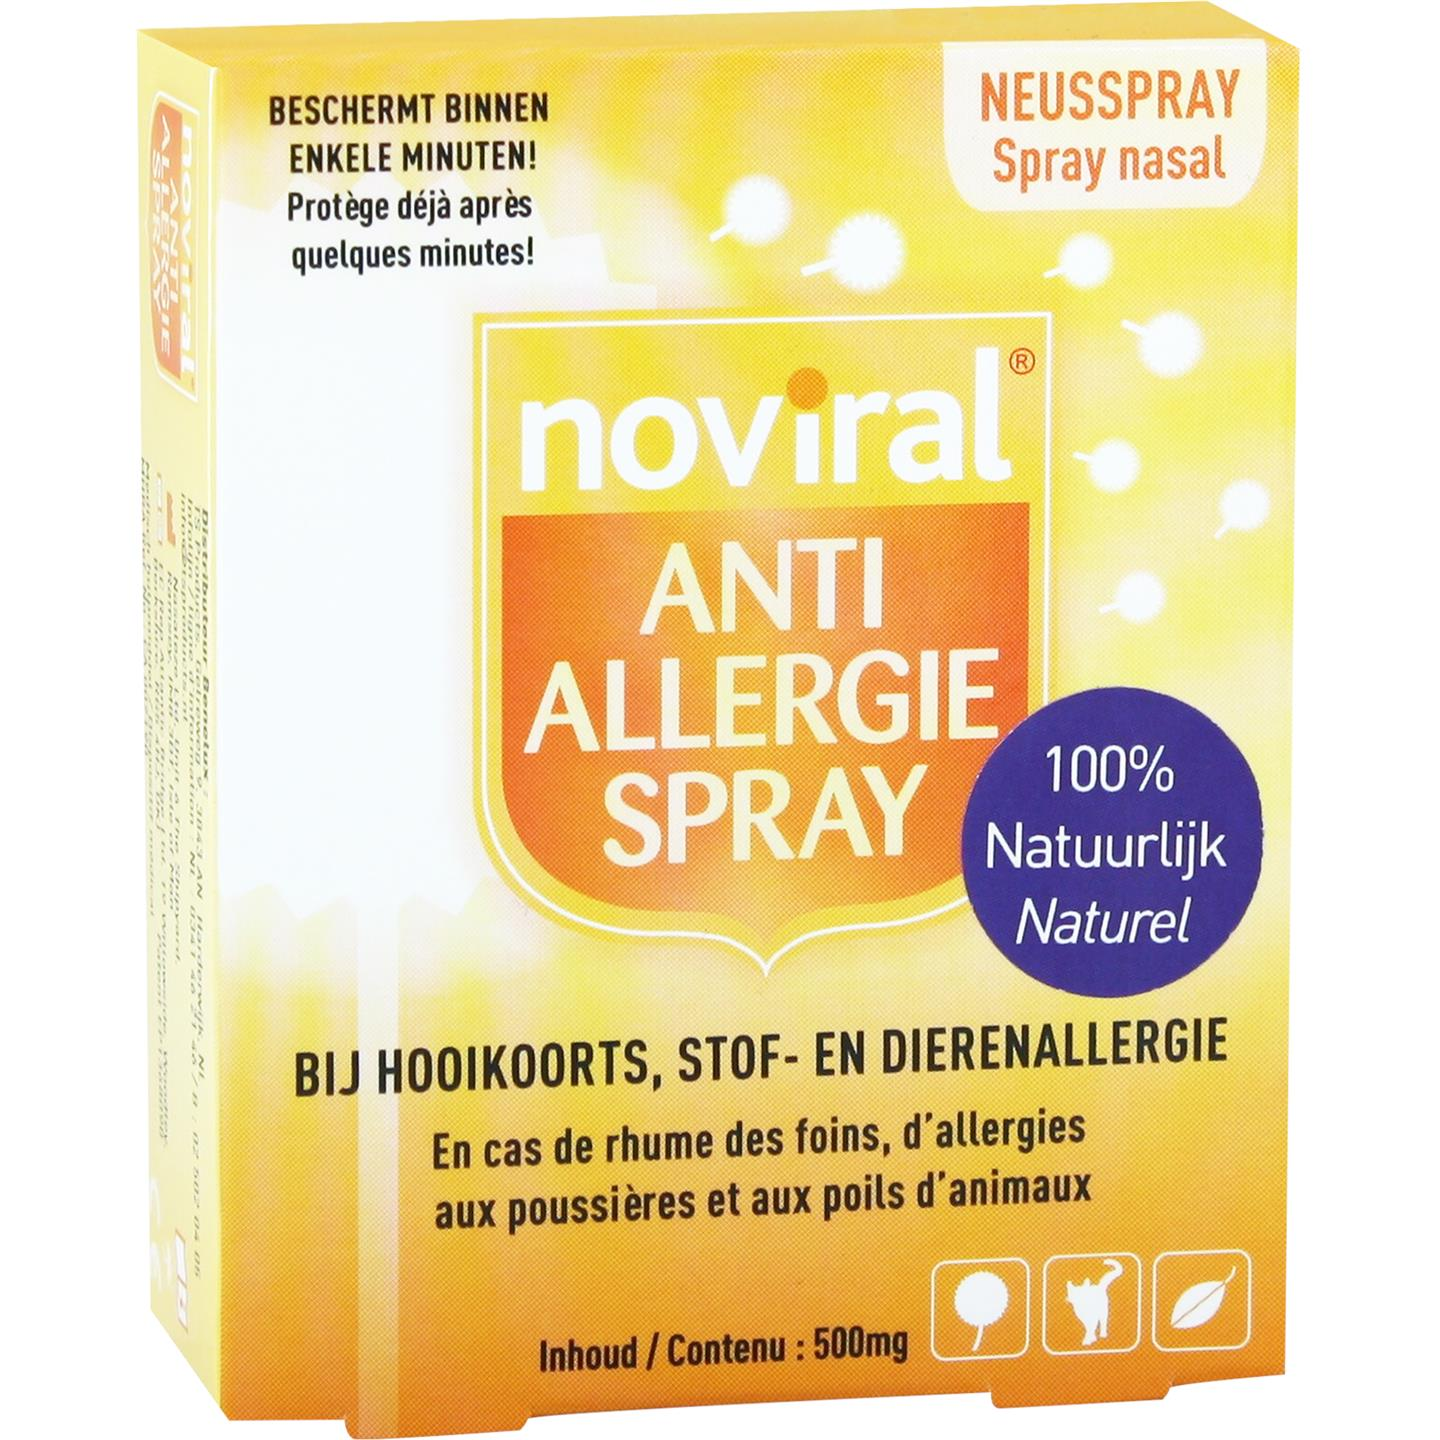 Anti allergie spray